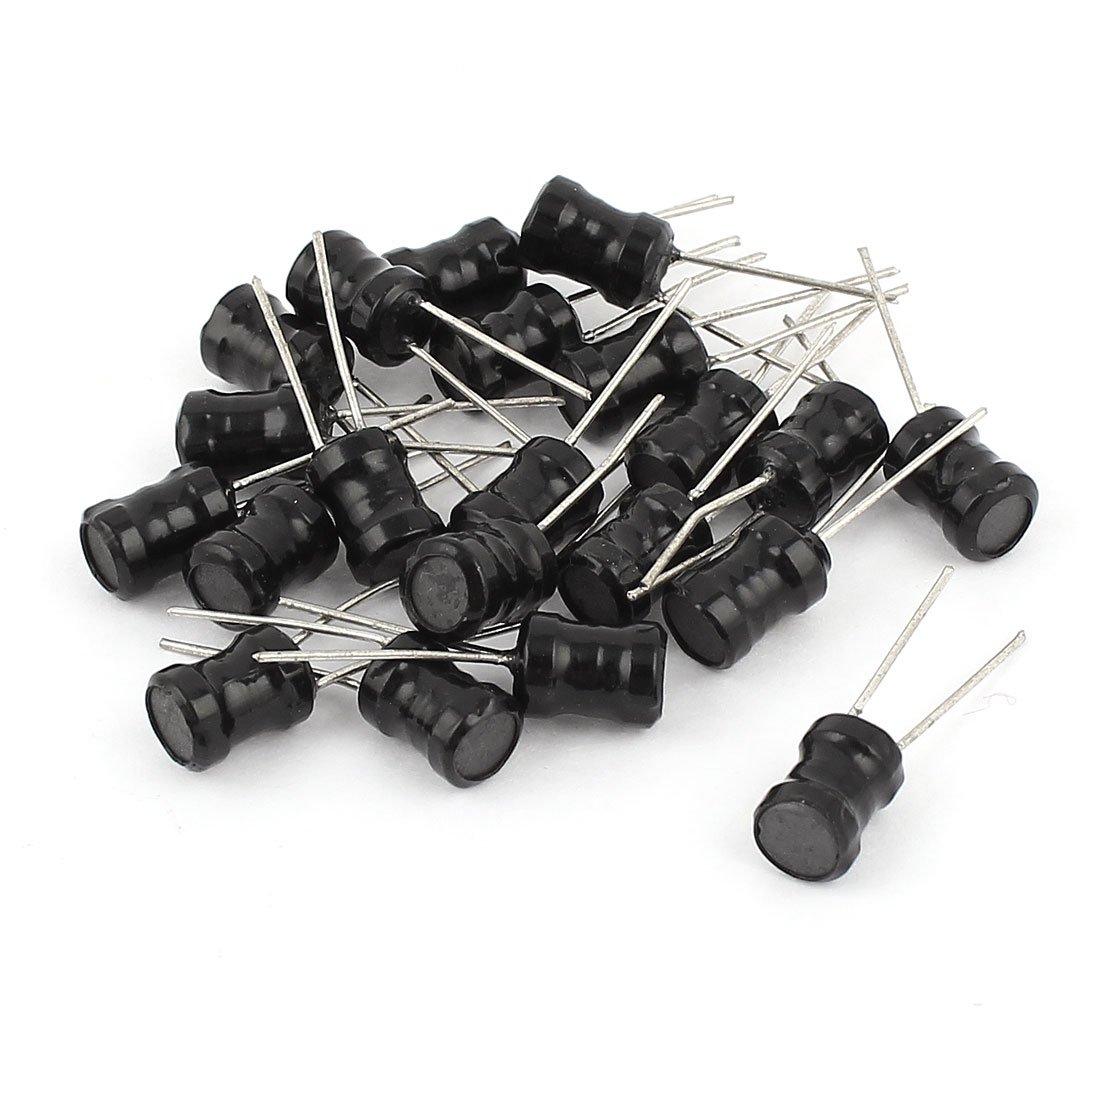 20Pcs Through Hole 47mH 50mA 6x8mm 10% Radial Leads Inductors Black